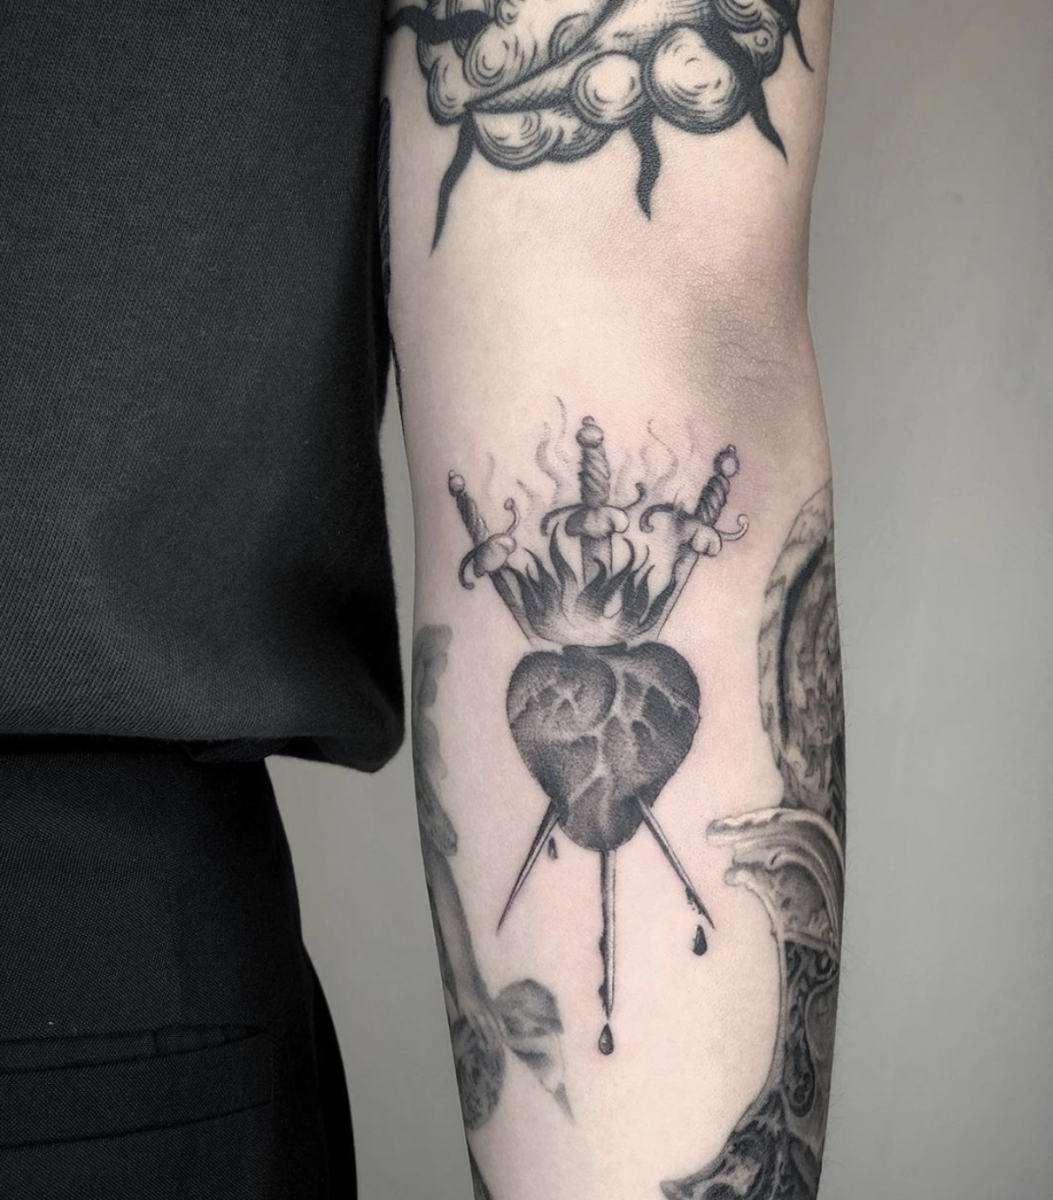 Three of Swords tattoo by @soulass in Taipei,Taiwan.